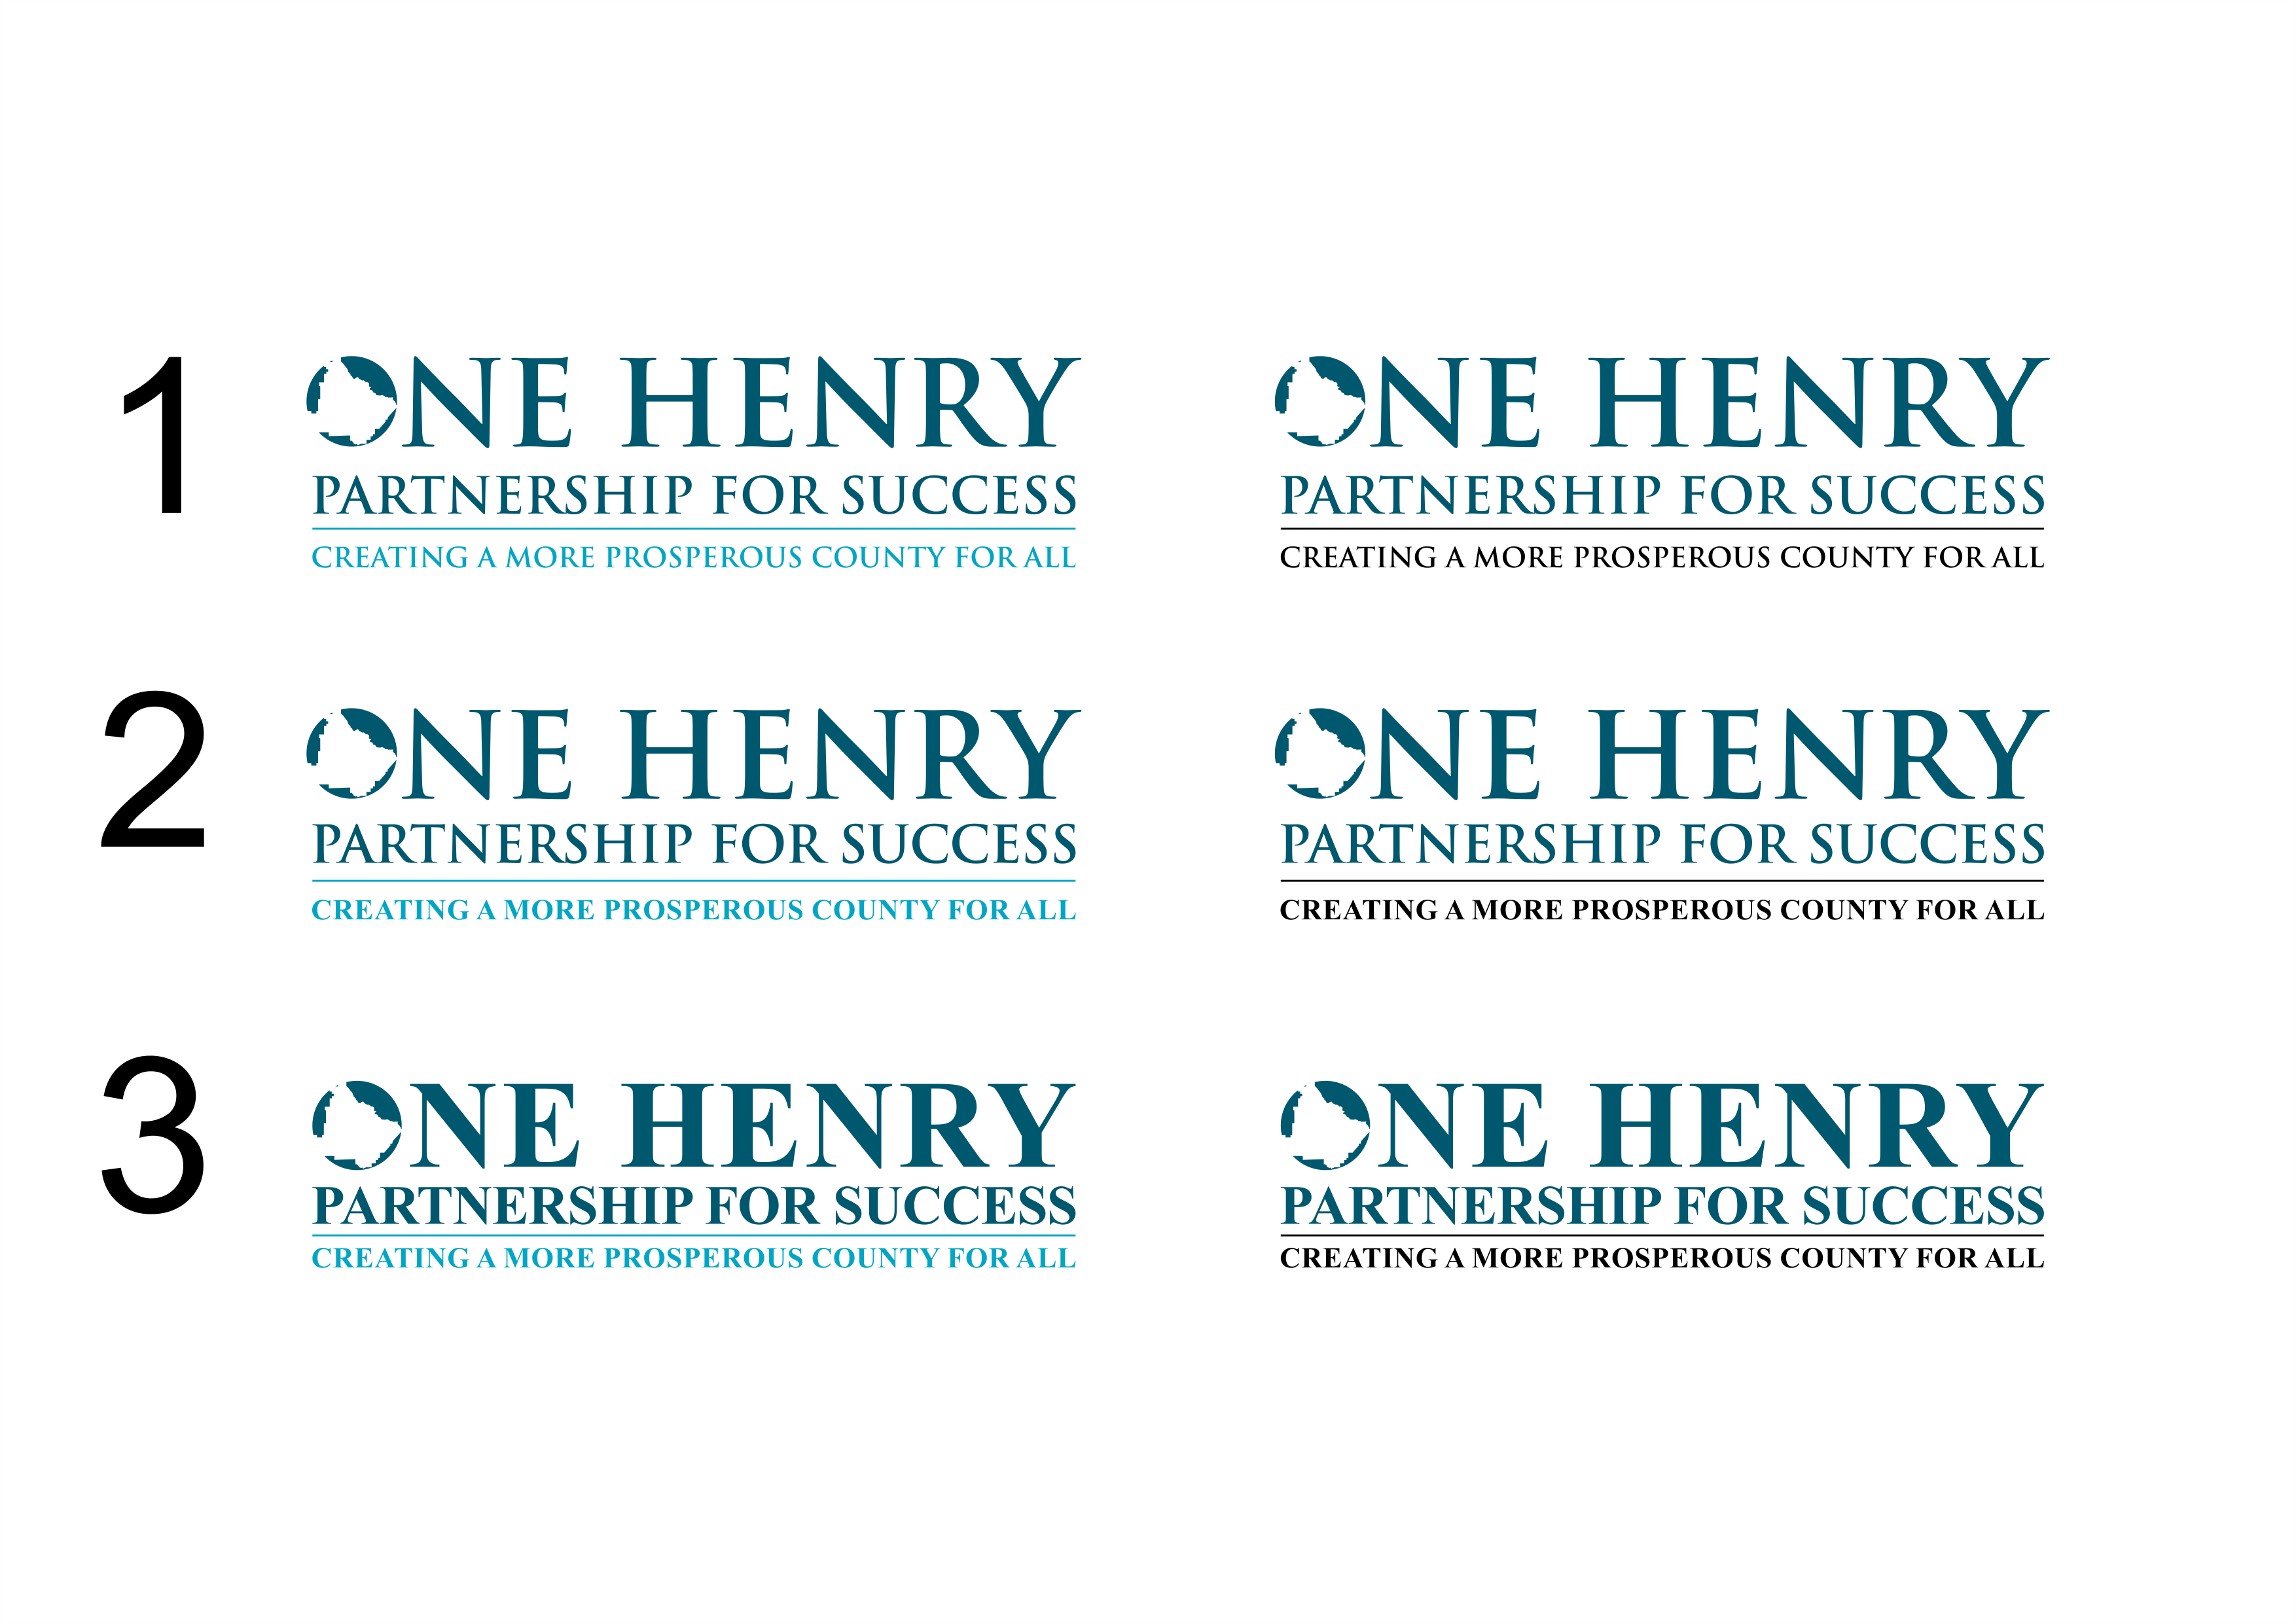 One Henry